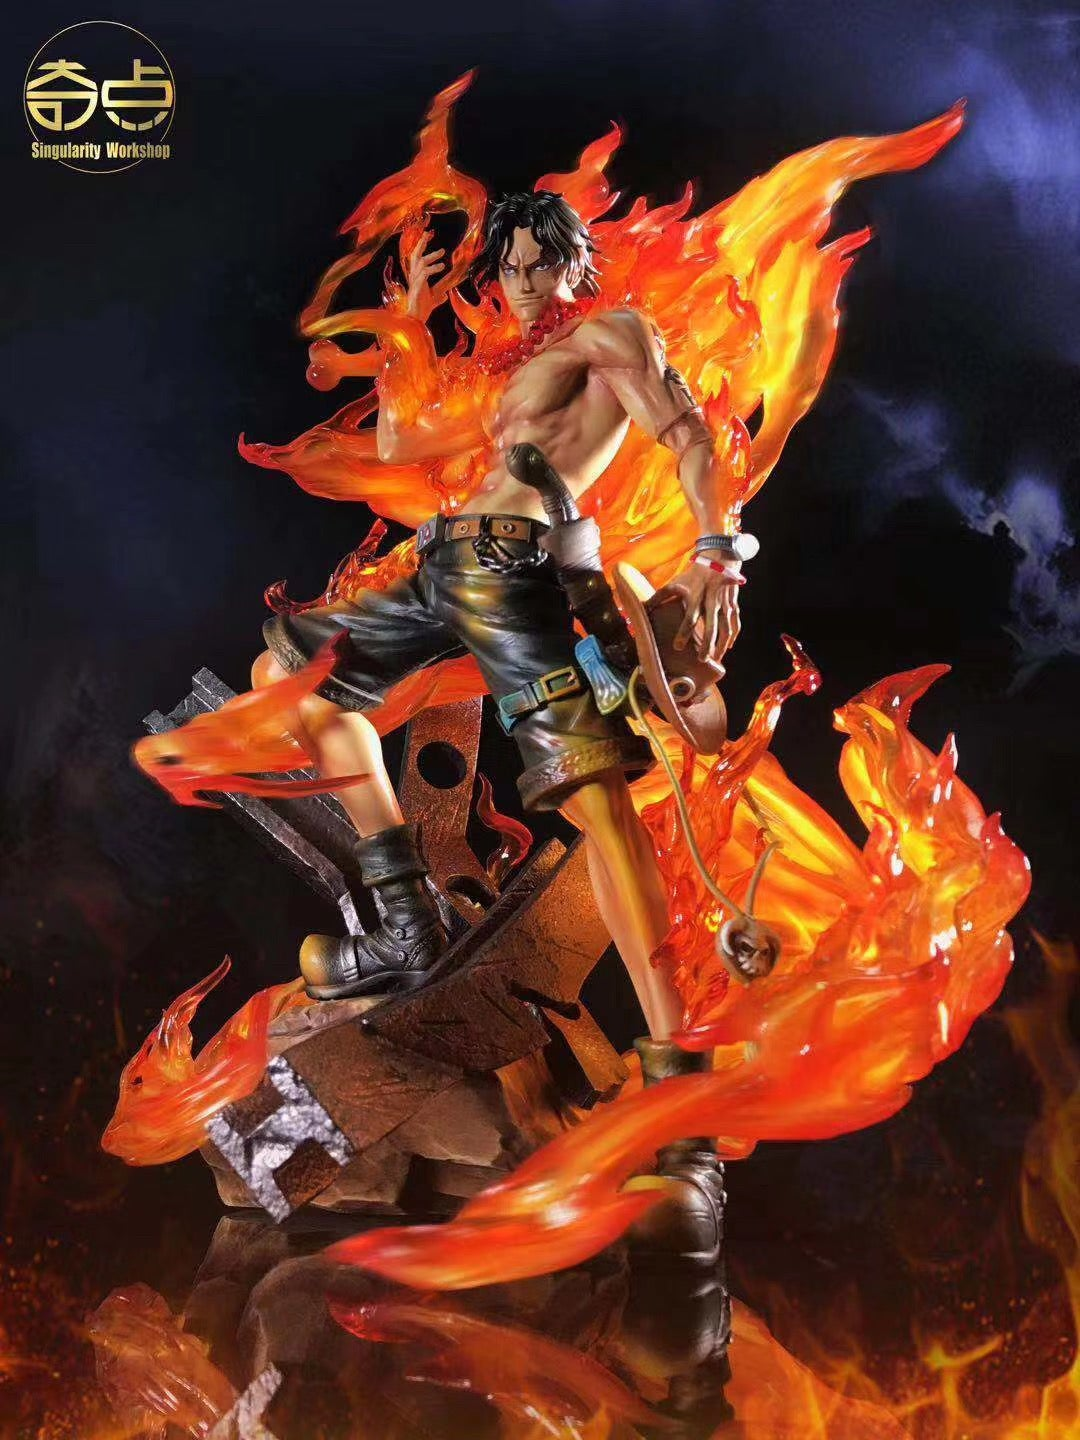 Image of [In-Stock]One Piece Singularity Workshop 1:4 Ace Resin Statue